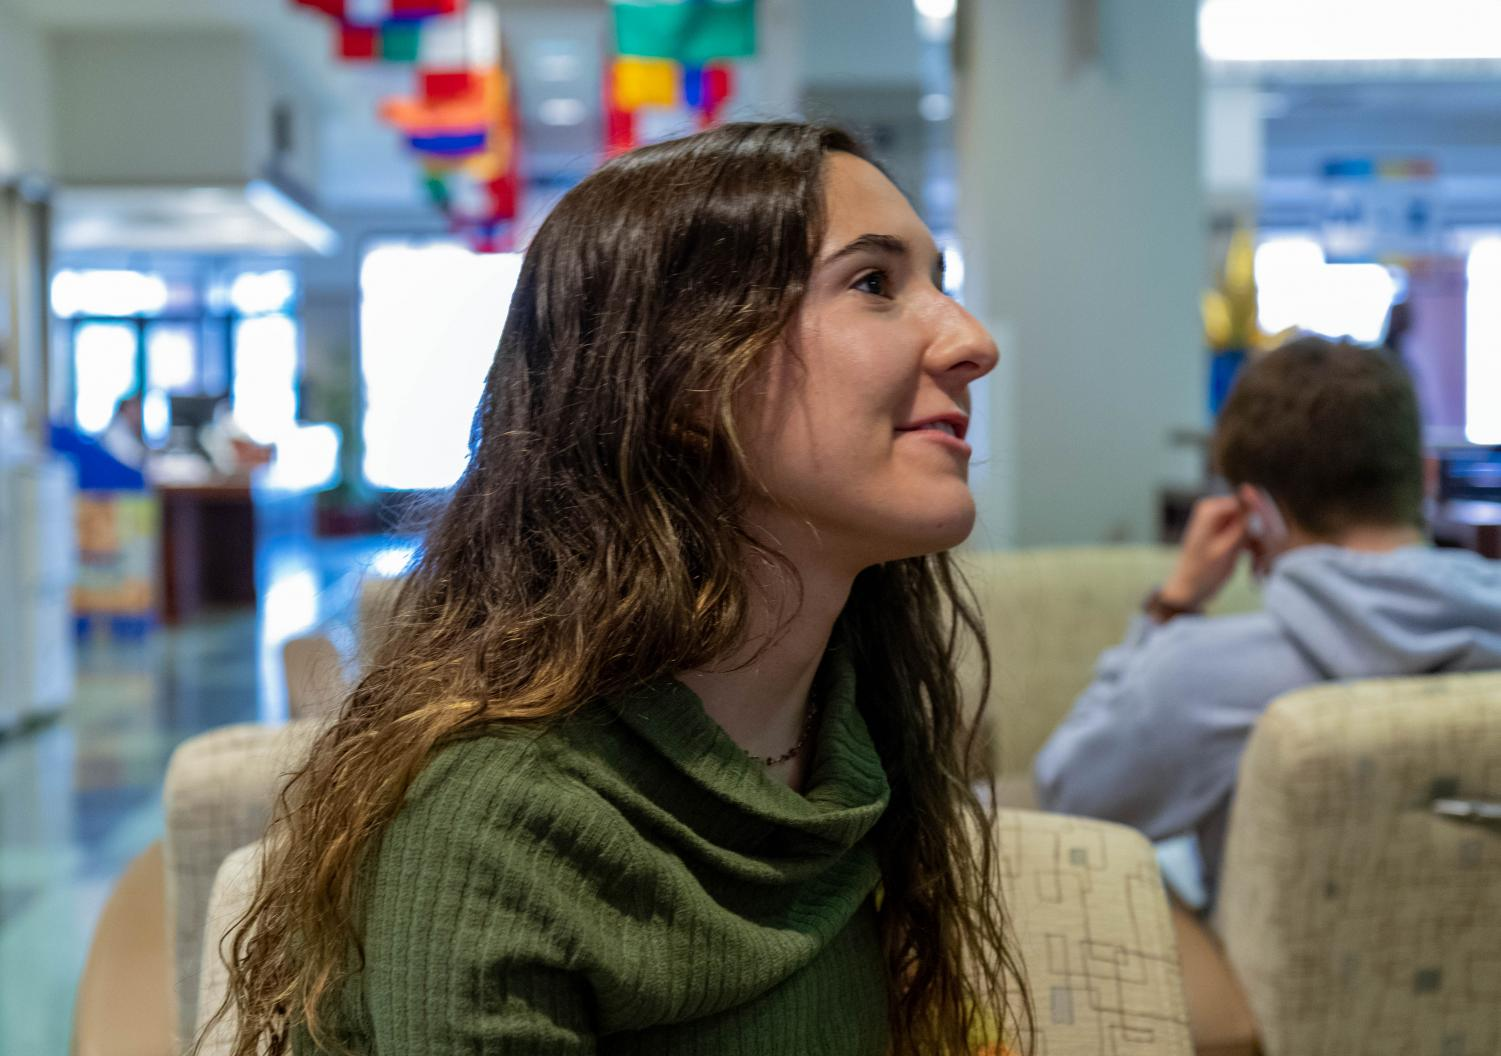 Menzia started the company in her final semester of Marquette.